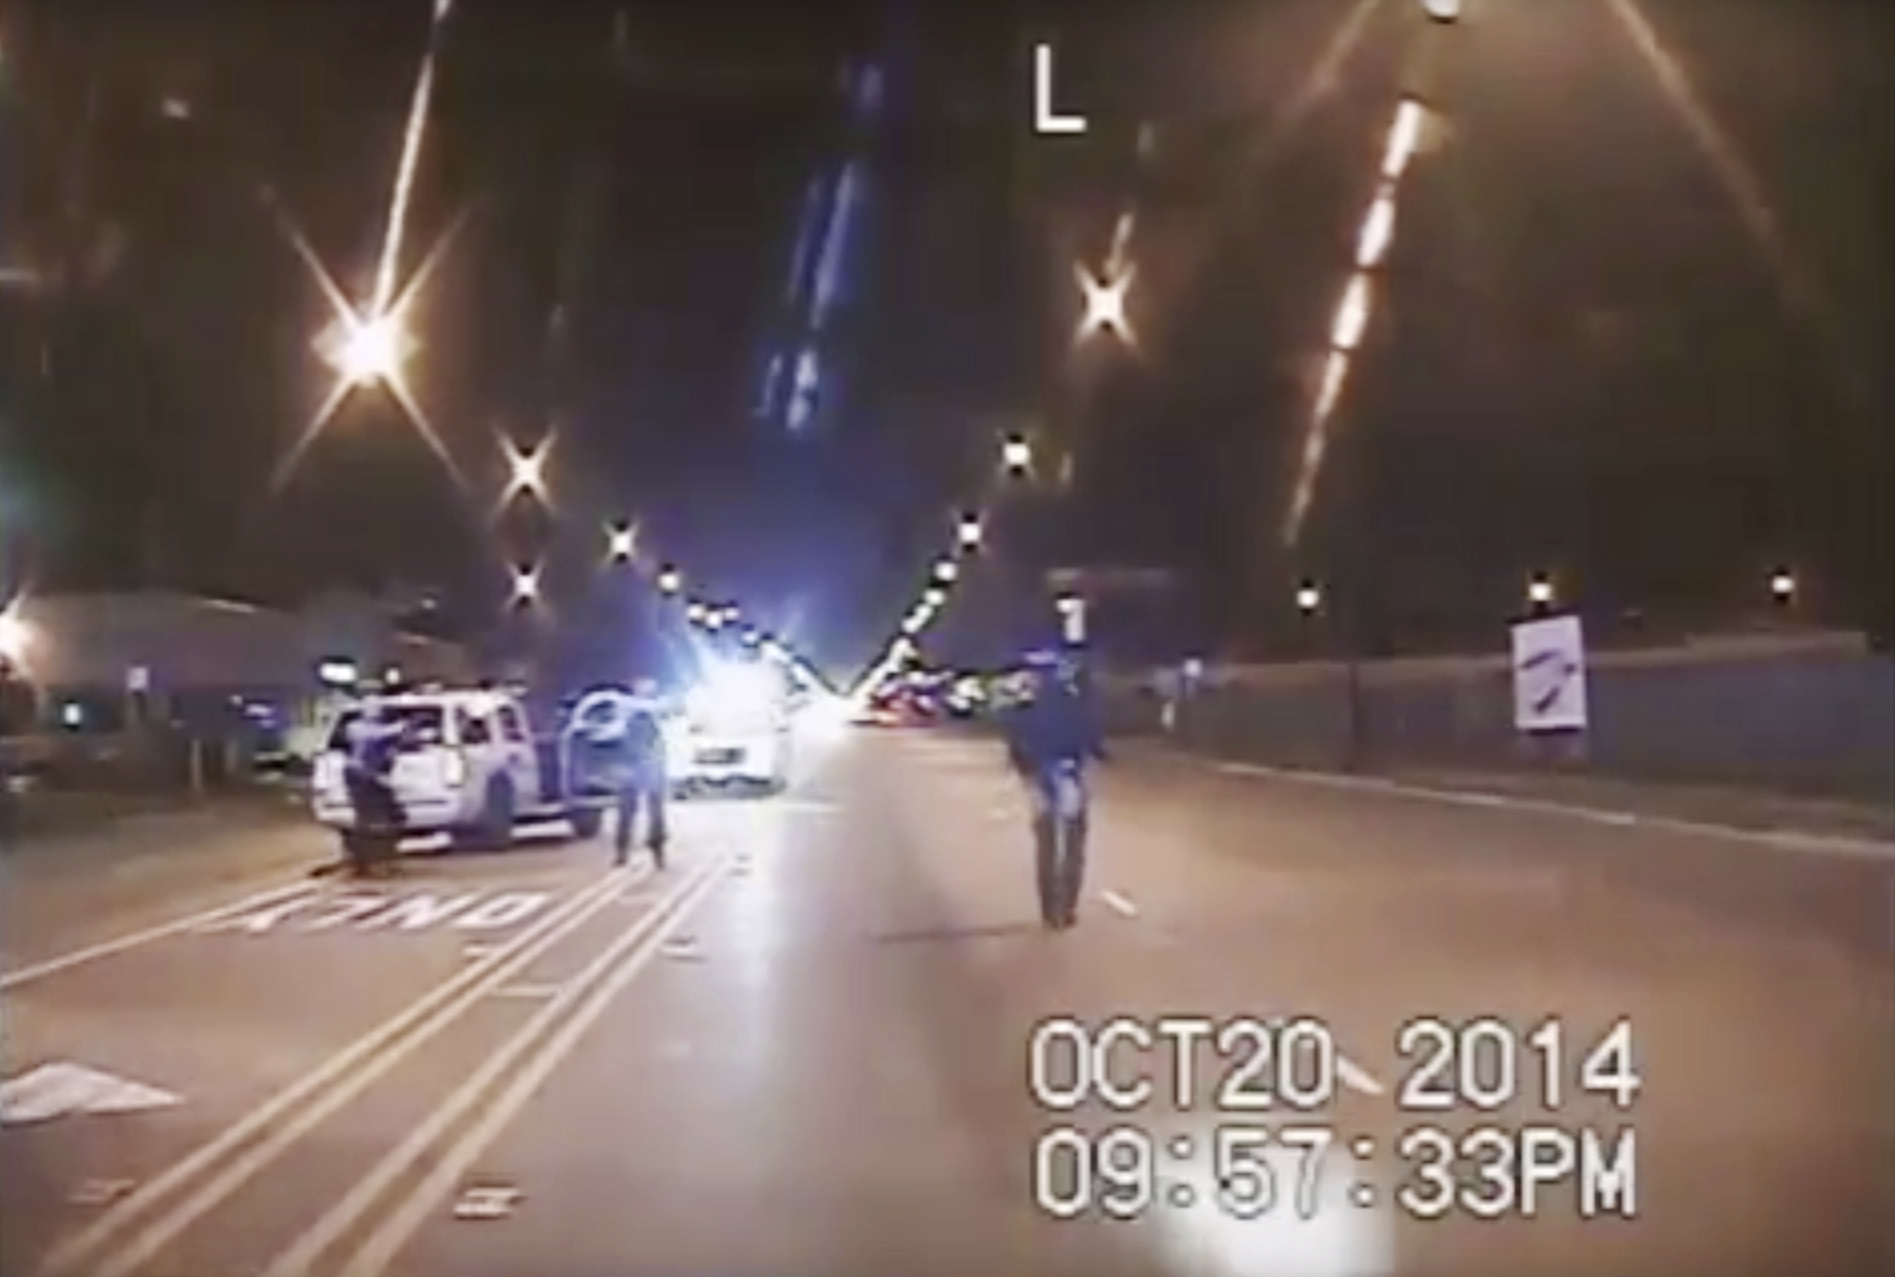 4 Chicago Police Officers Fired In Alleged Cover-up For Jason Van Dyke